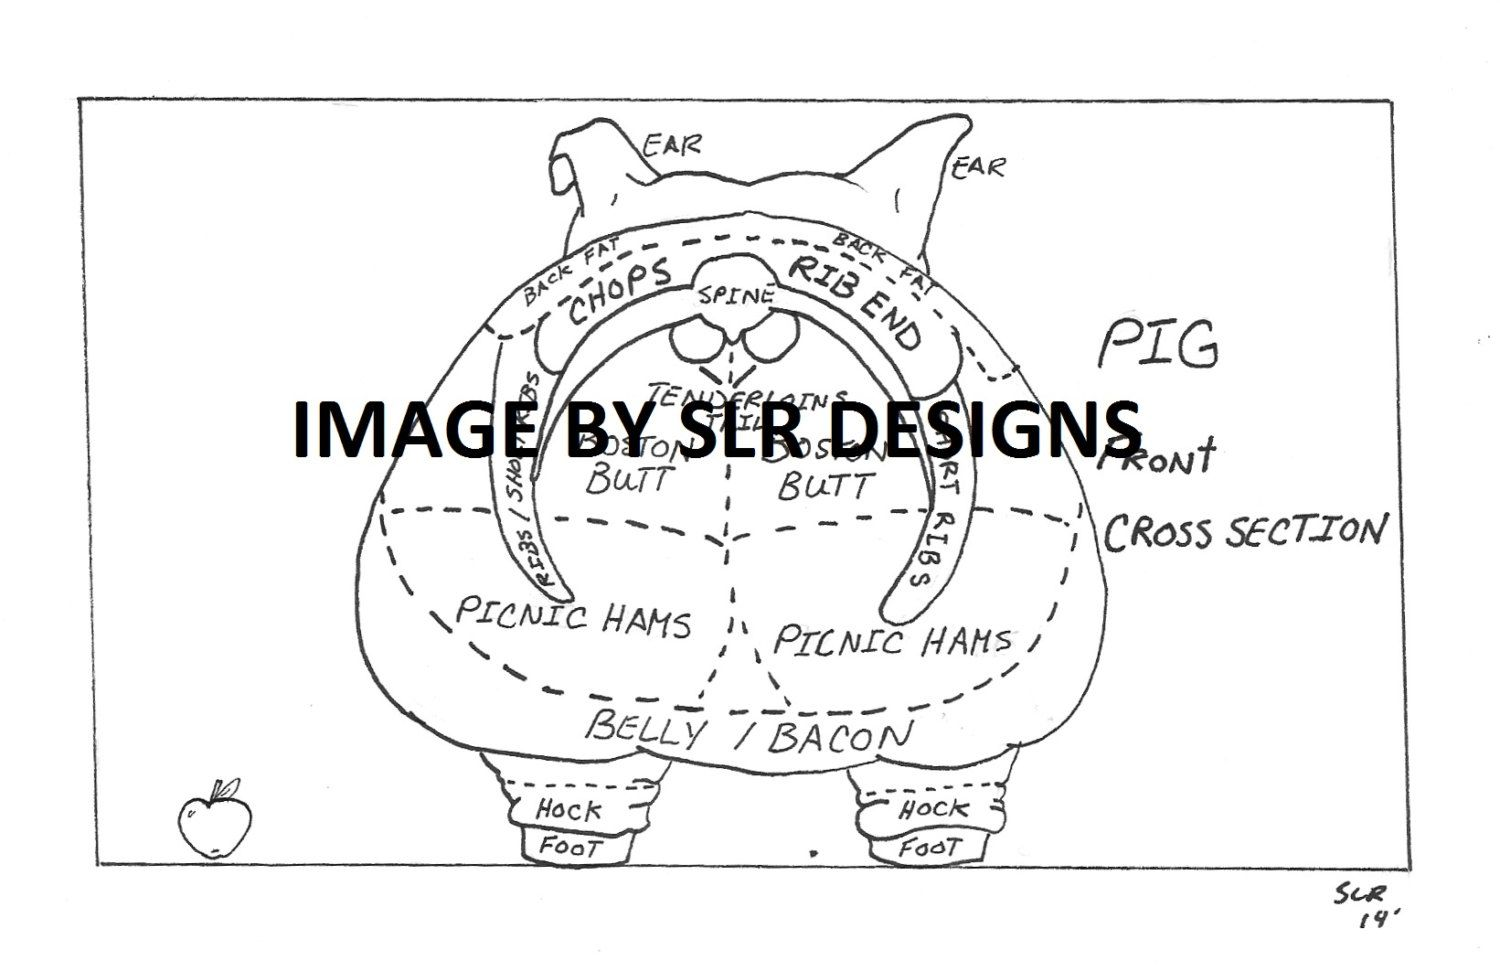 hight resolution of pig diagram front cross section